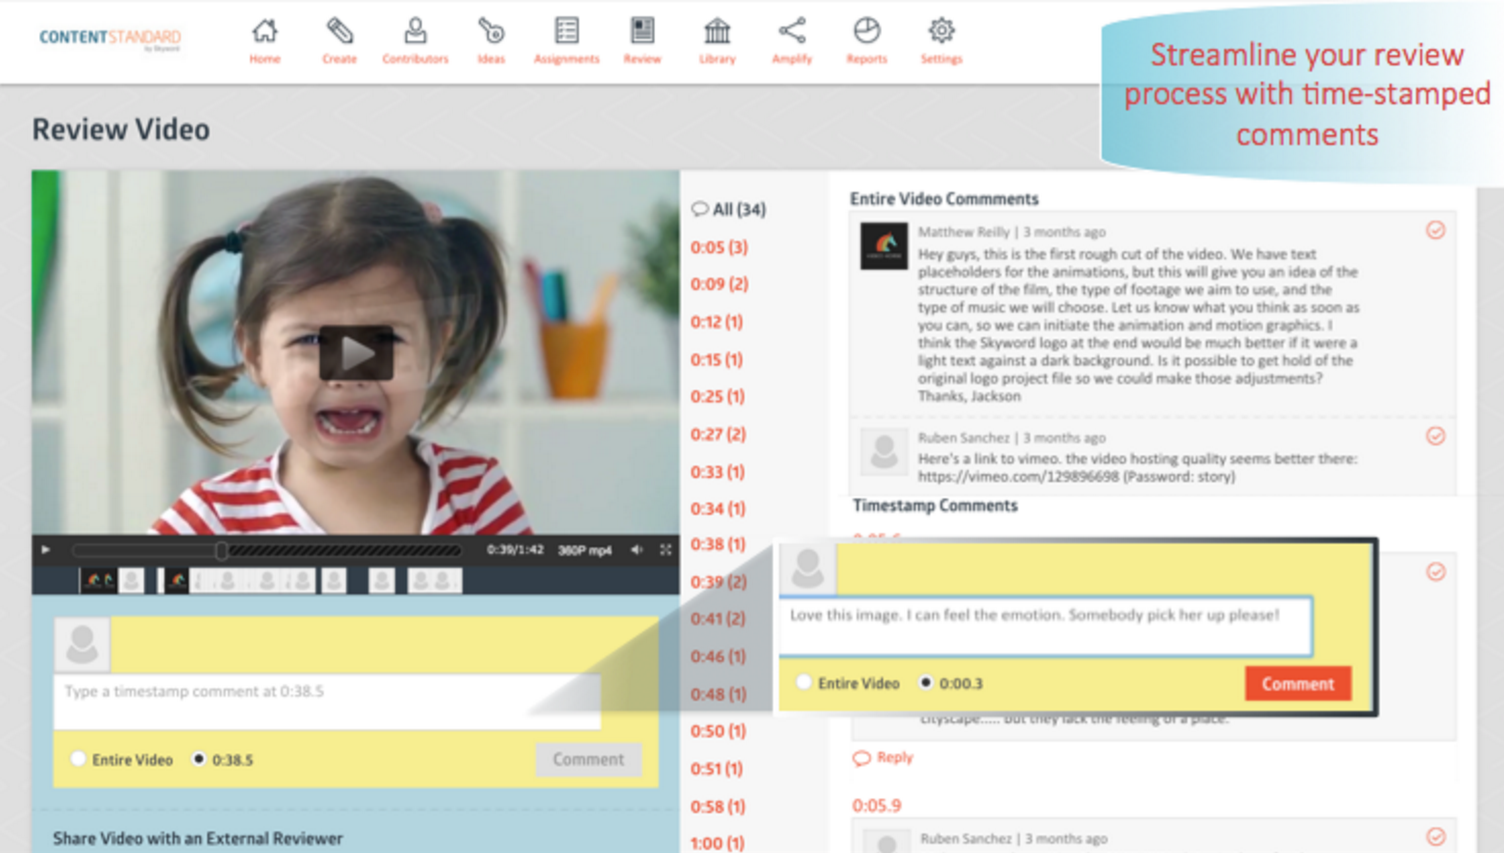 Streamline your video review process with time-stamped comments.